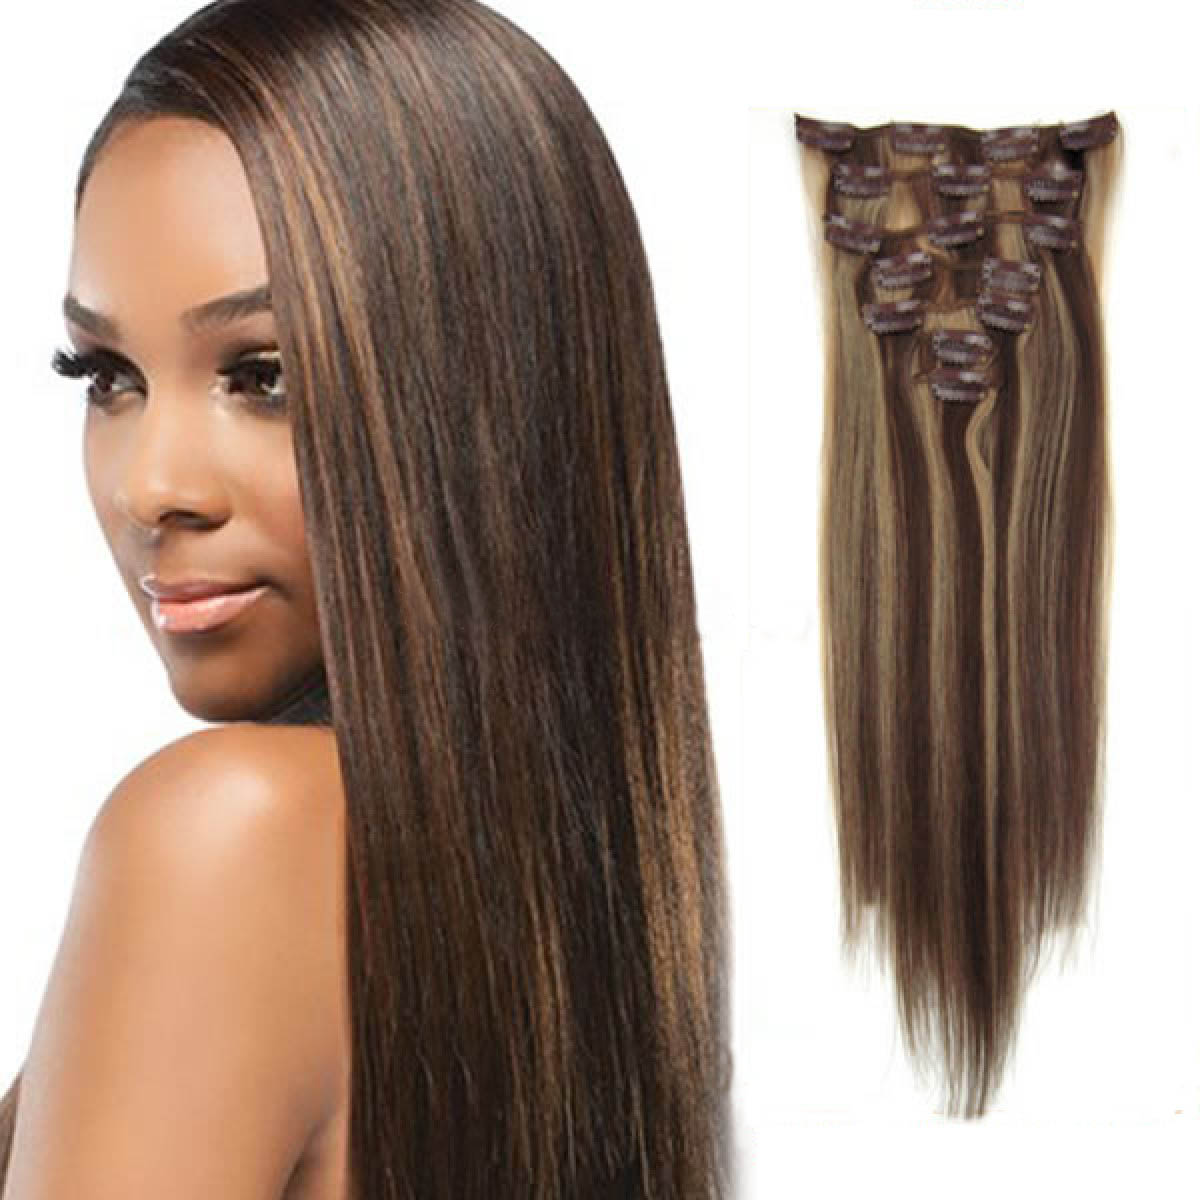 18 Inch 427 Brownblonde Clip In Remy Human Hair Extensions 7pcs